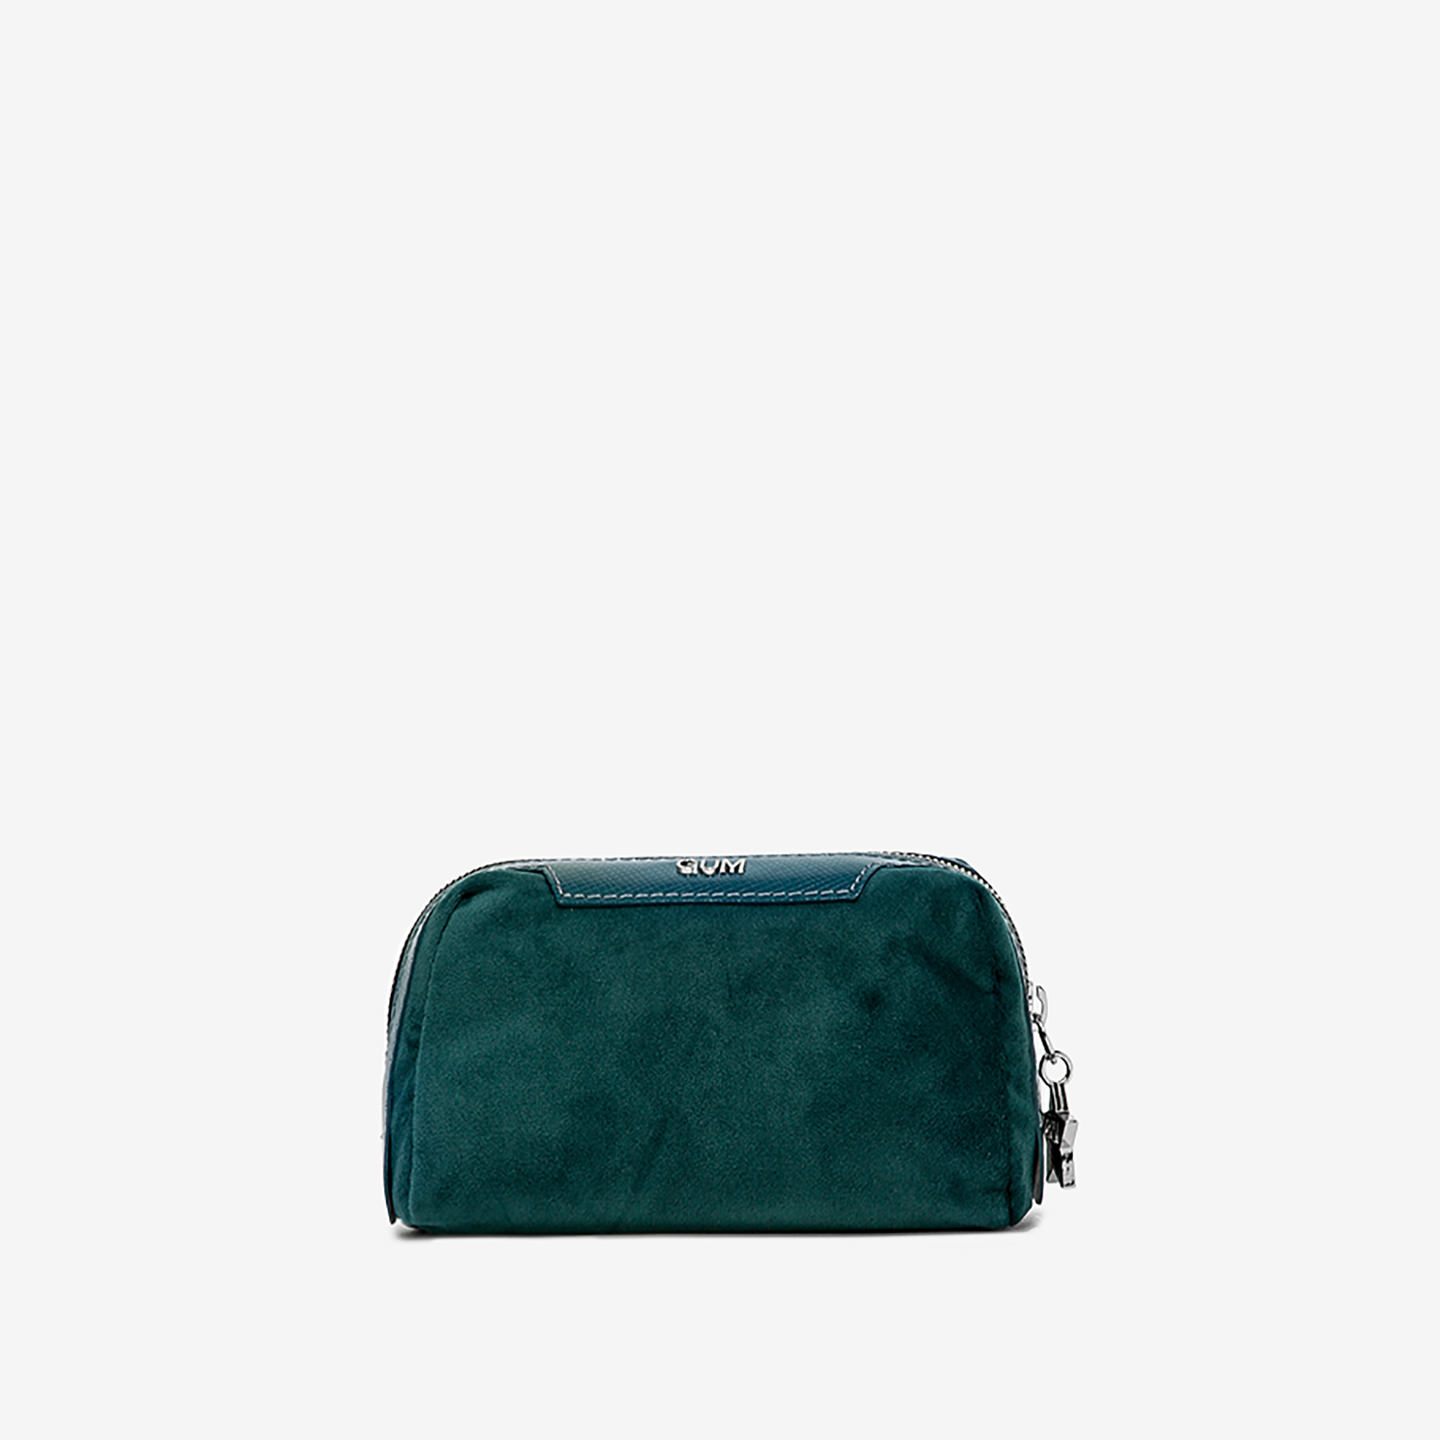 GUM: BEAUTY CASE PICCOLO